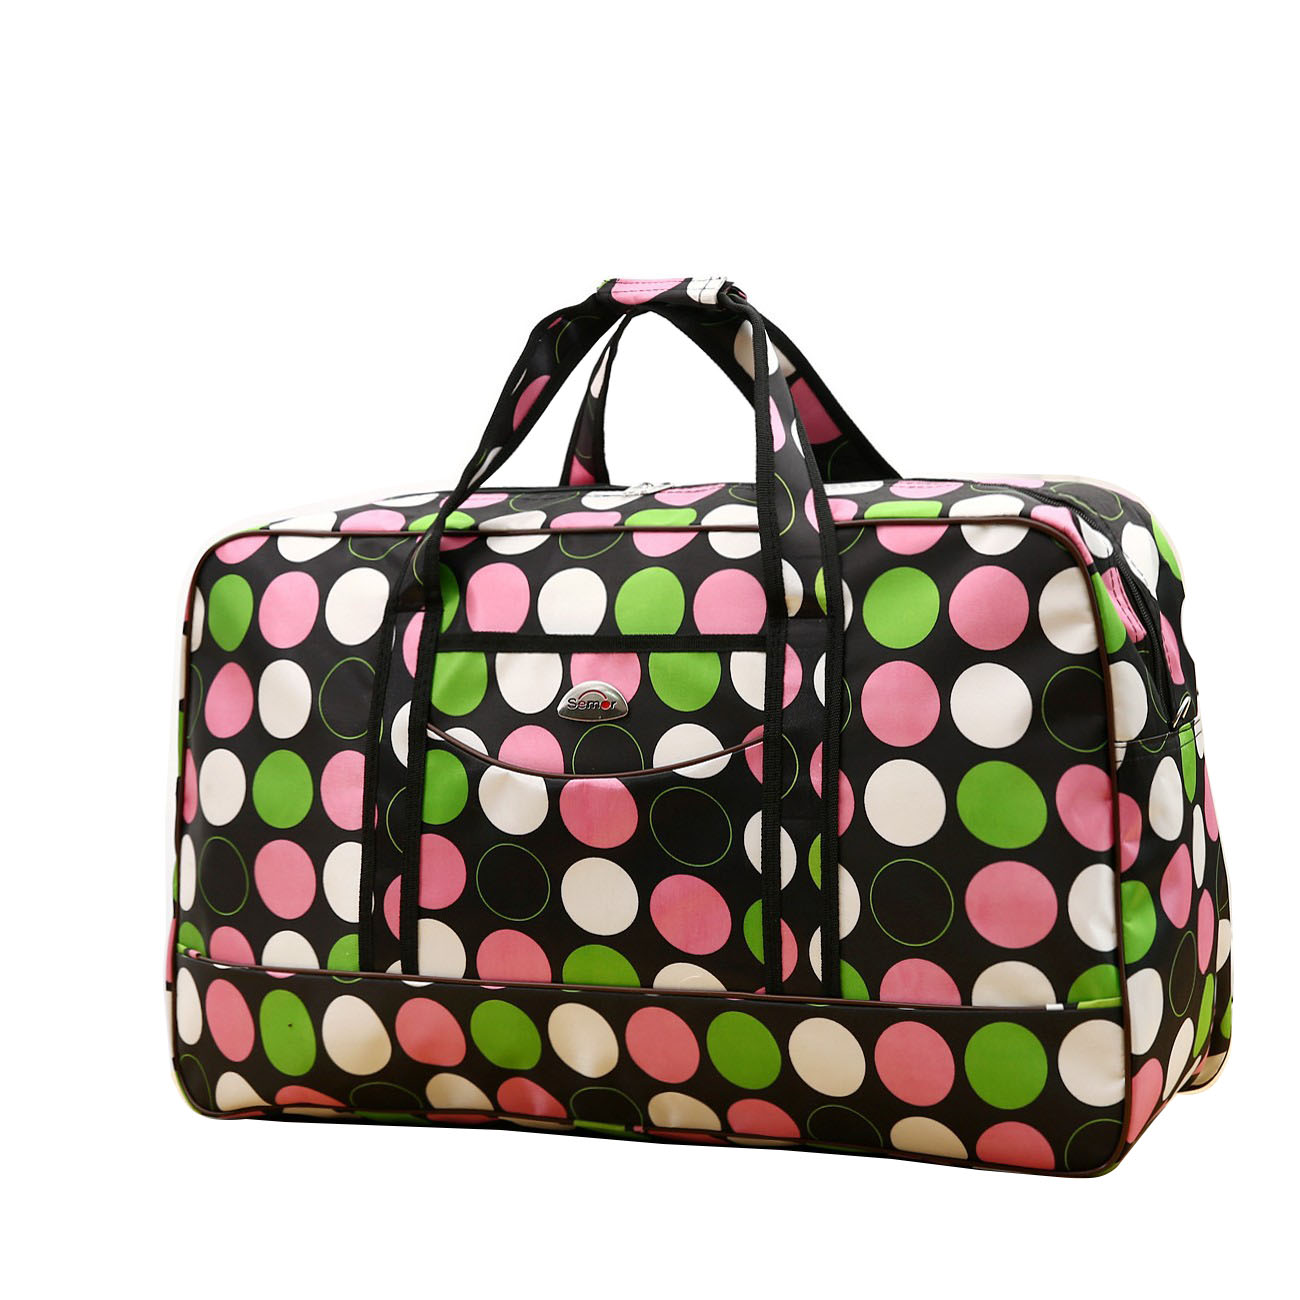 Detail Feedback Questions about Multifunction Women Travel Duffel Bags Tote  Large Weekend Bag Overnight Carry on Luggage Shoulder Crossbody Bags on ... f1472eba7f3e6